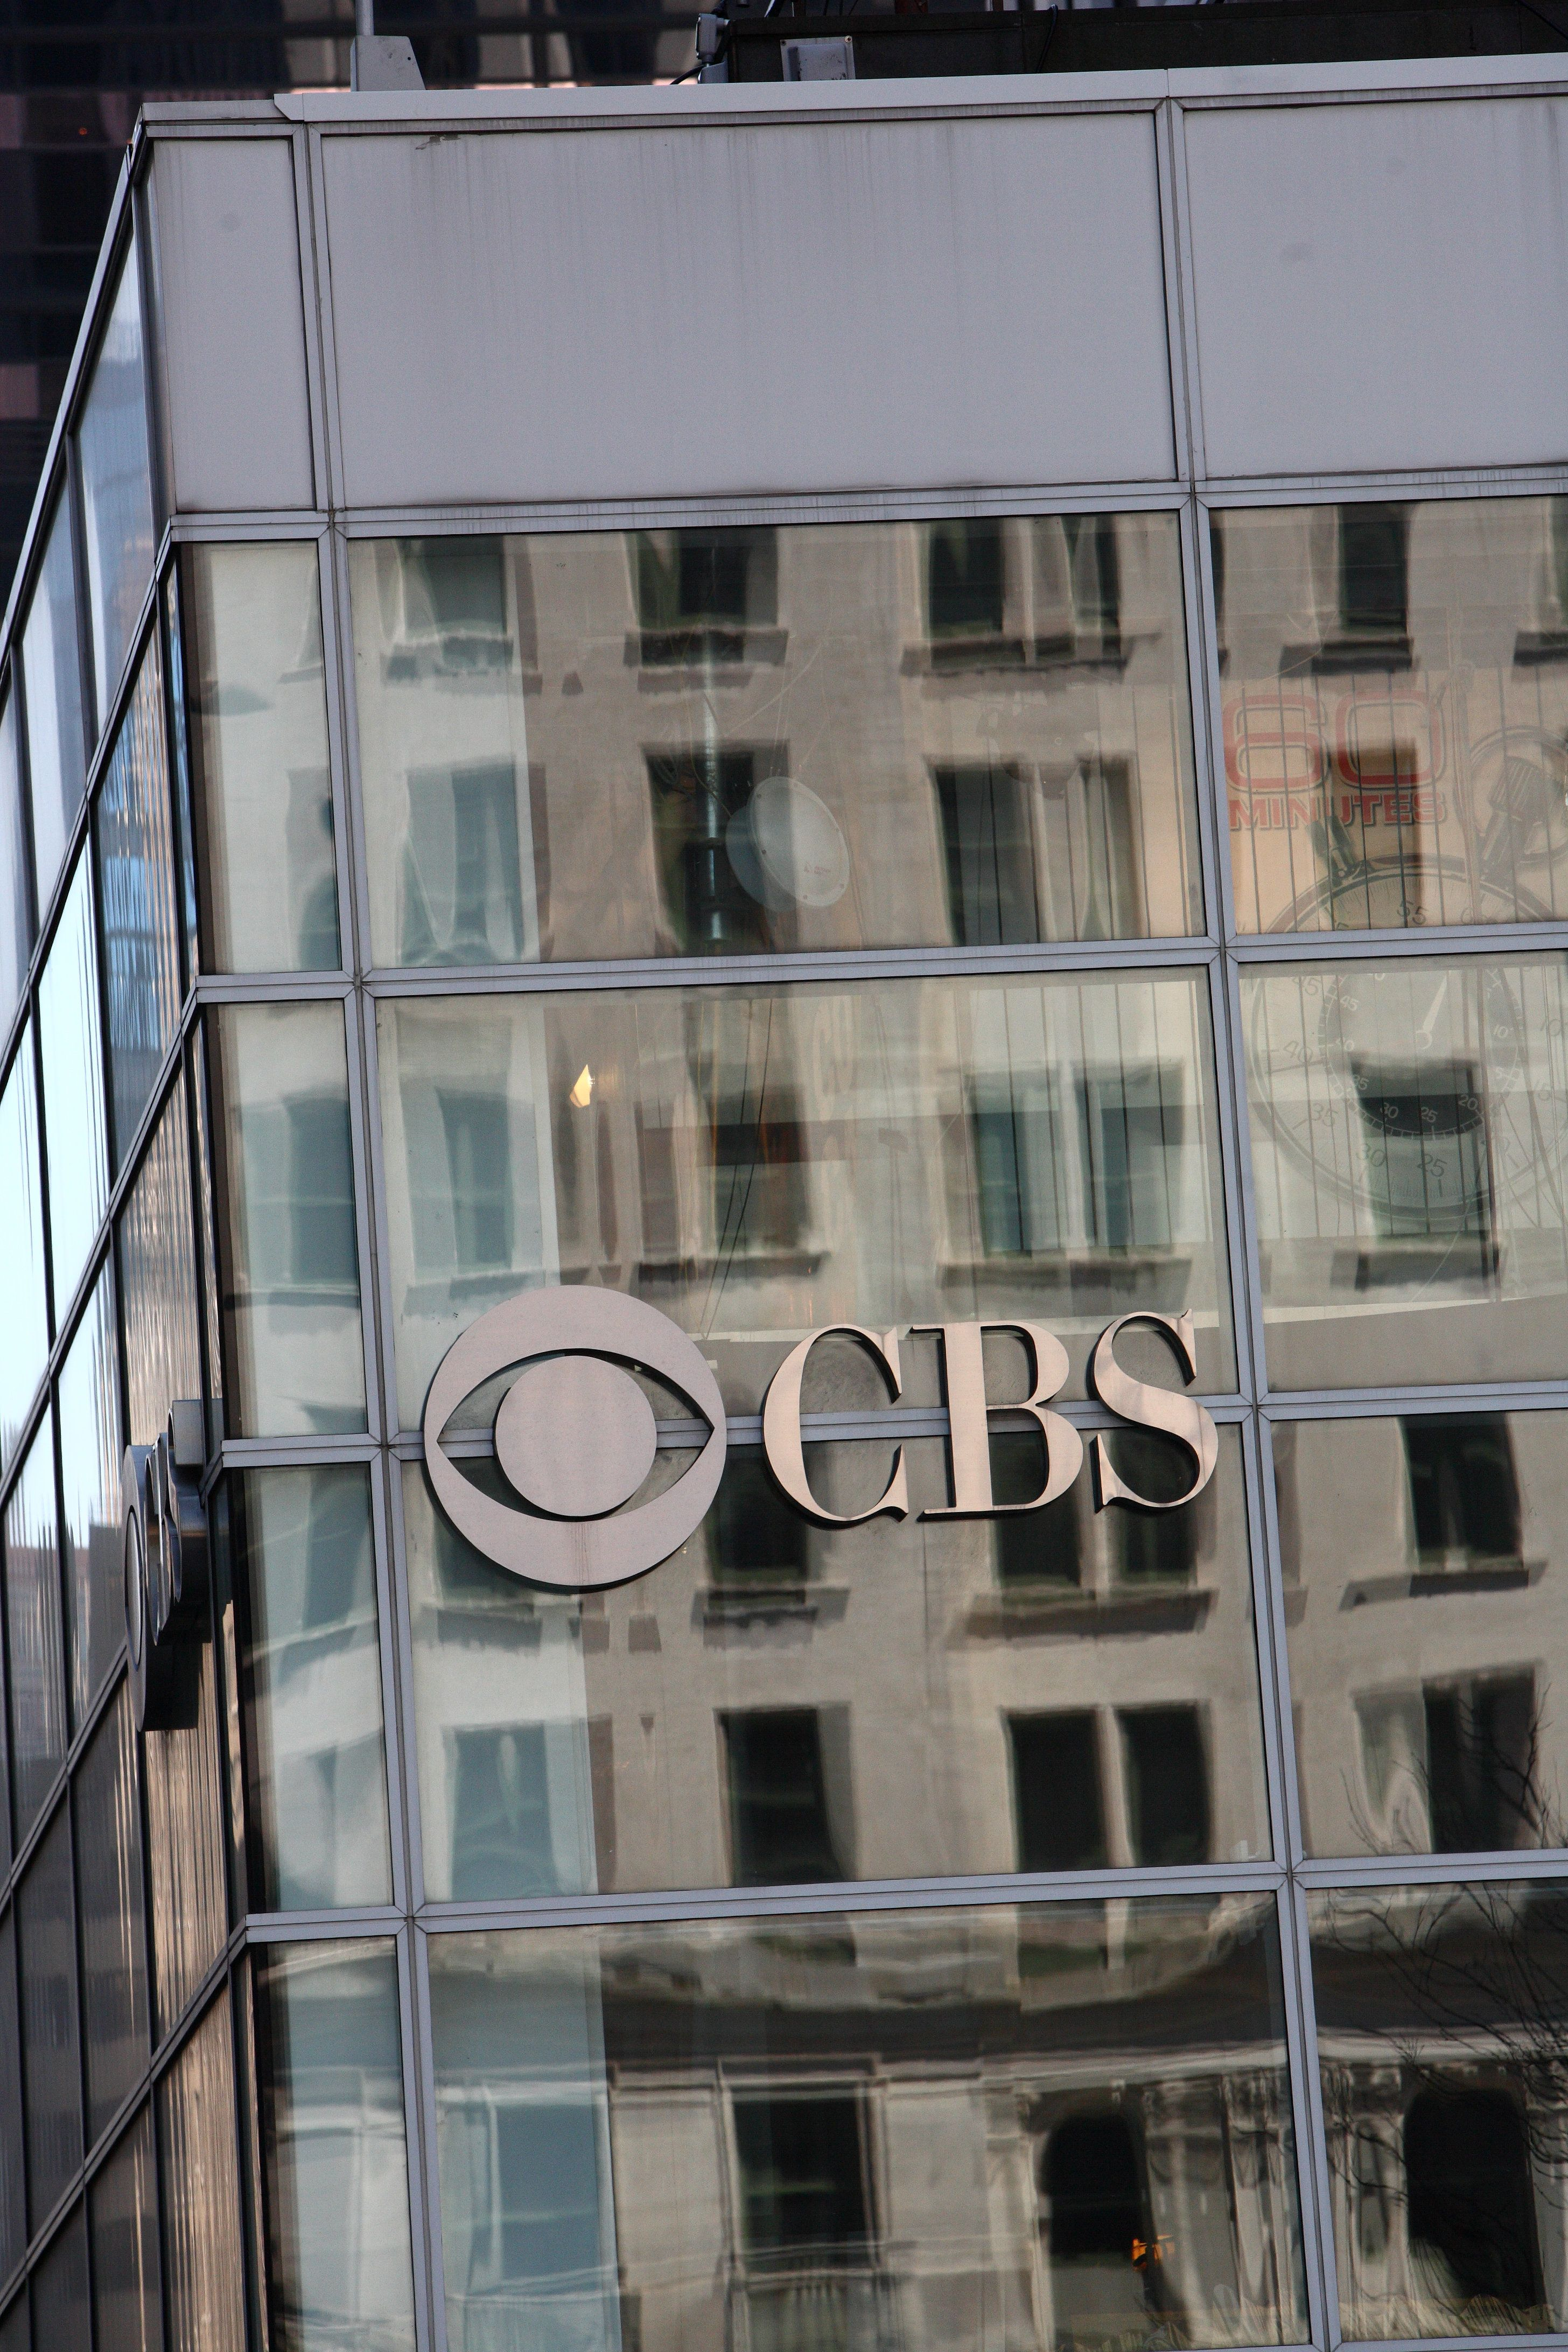 Ex-CBS Executive Blasts Network's 'White Problem' In Scathing